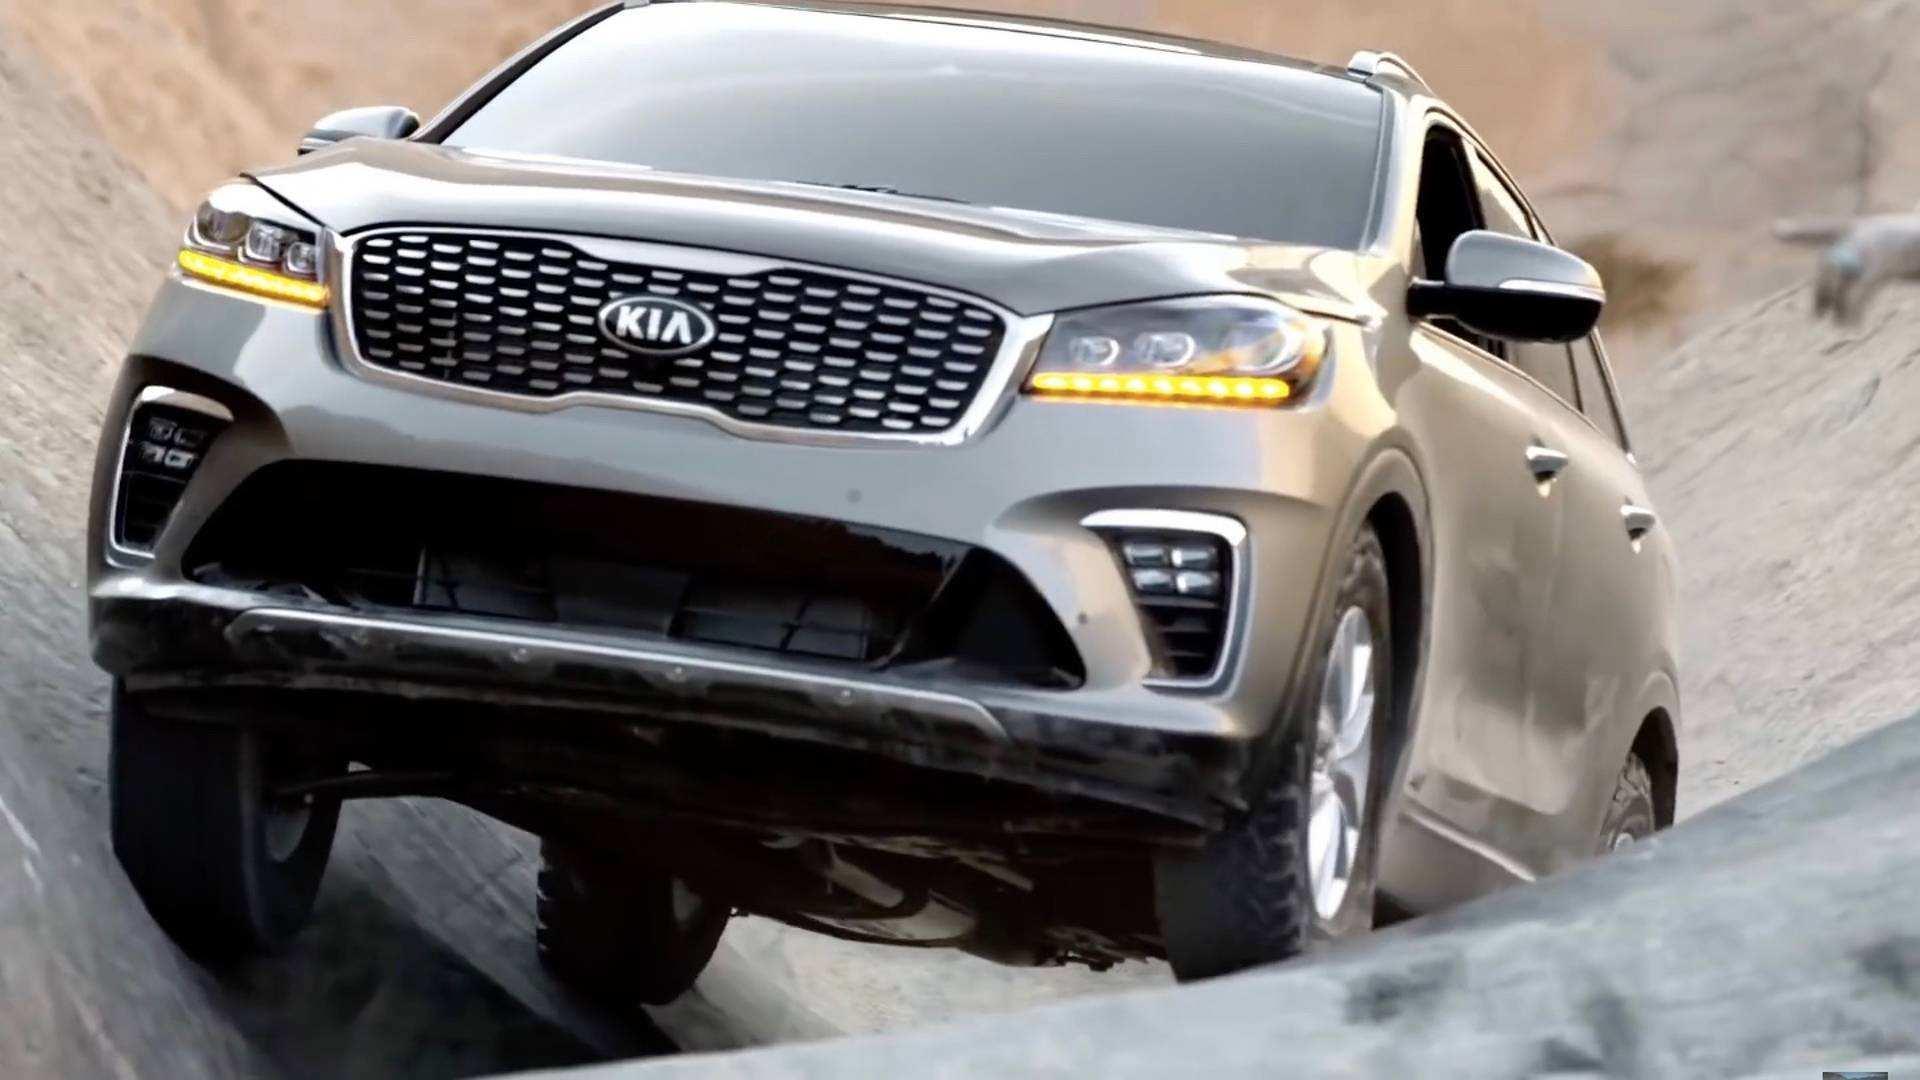 55 All New Kia Sorento 2019 Video Speed Test